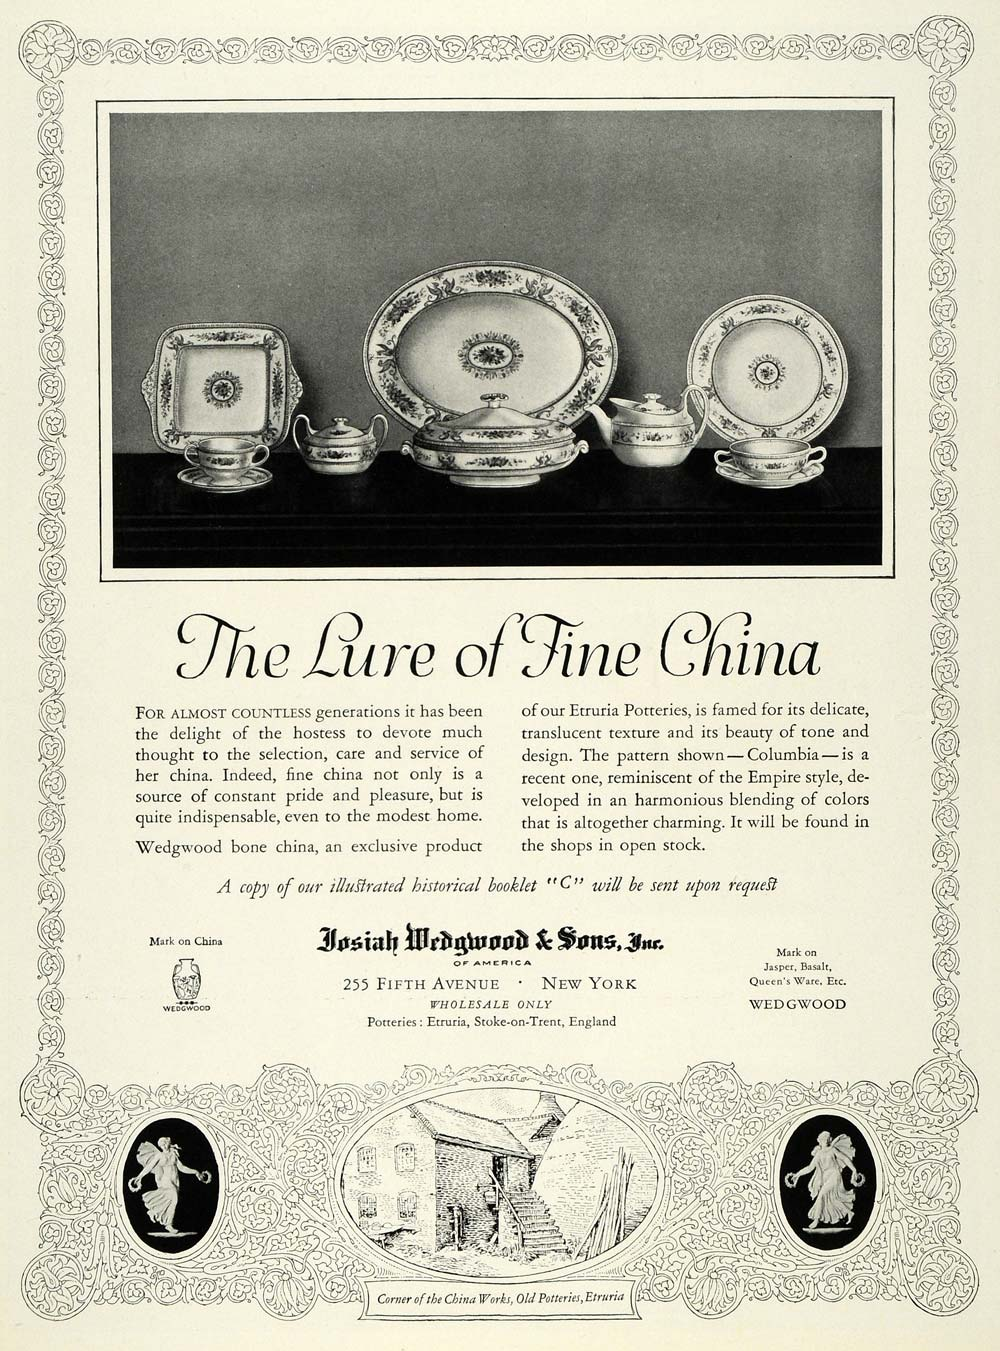 1925 Ad Josiah Wedgwood Fine China Home Decorative - ORIGINAL ADVERTISING HG1